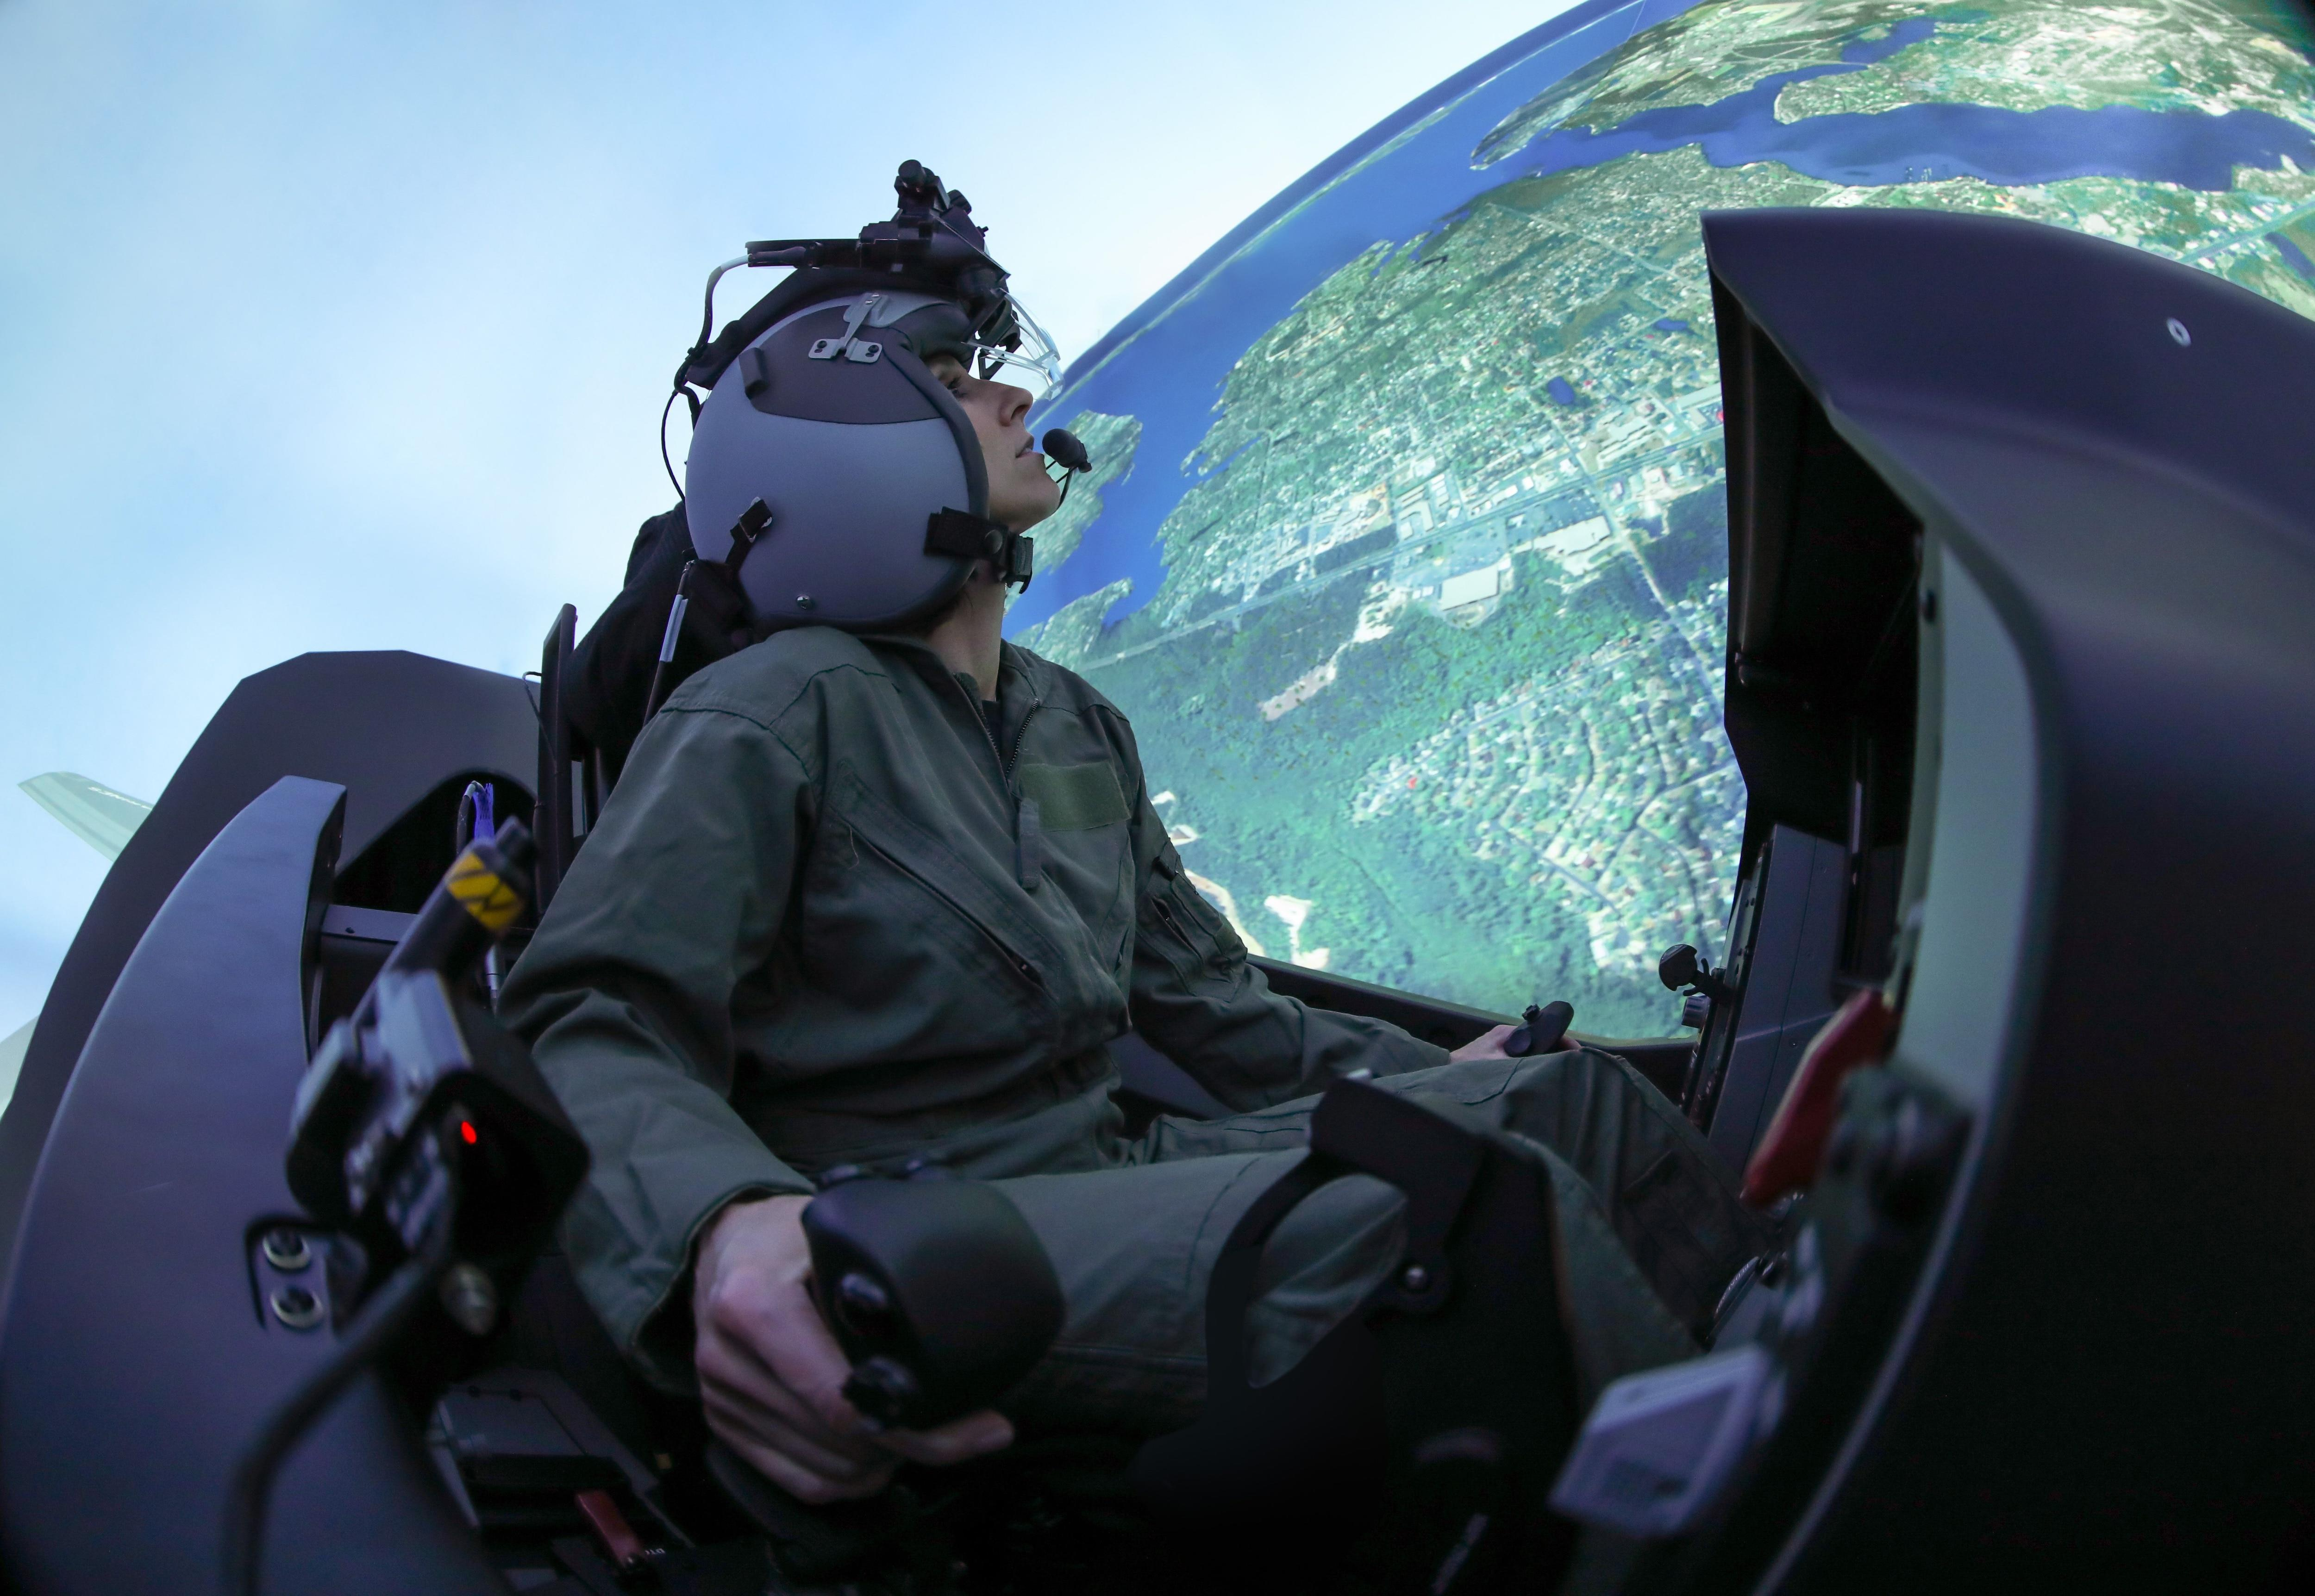 F-35 simulators can now team up with other fighter sims for virtual combat